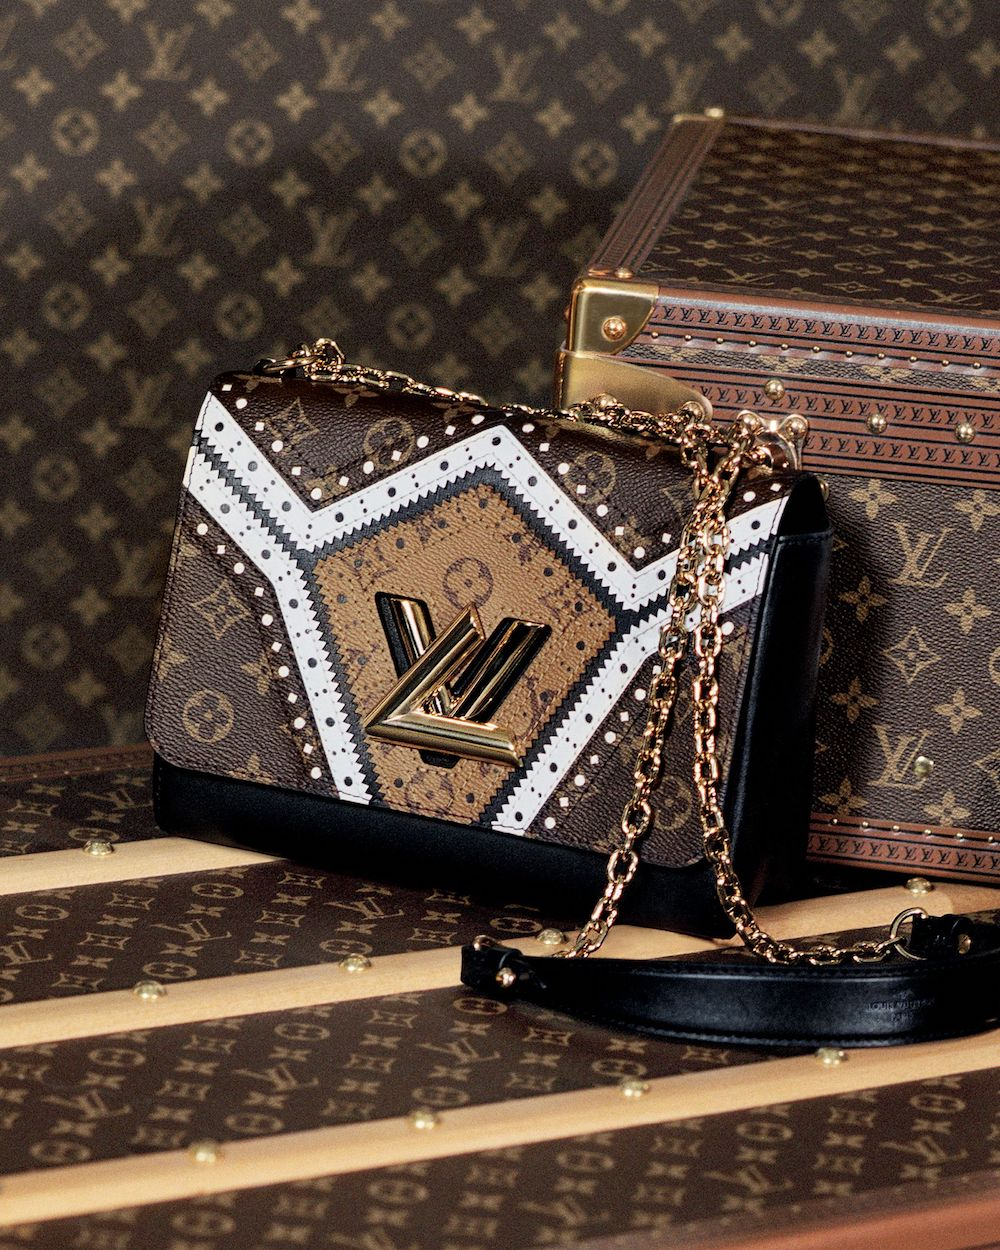 Louis Vuitton Series 7 Campaign for the Fall-Winter 2017 Collection